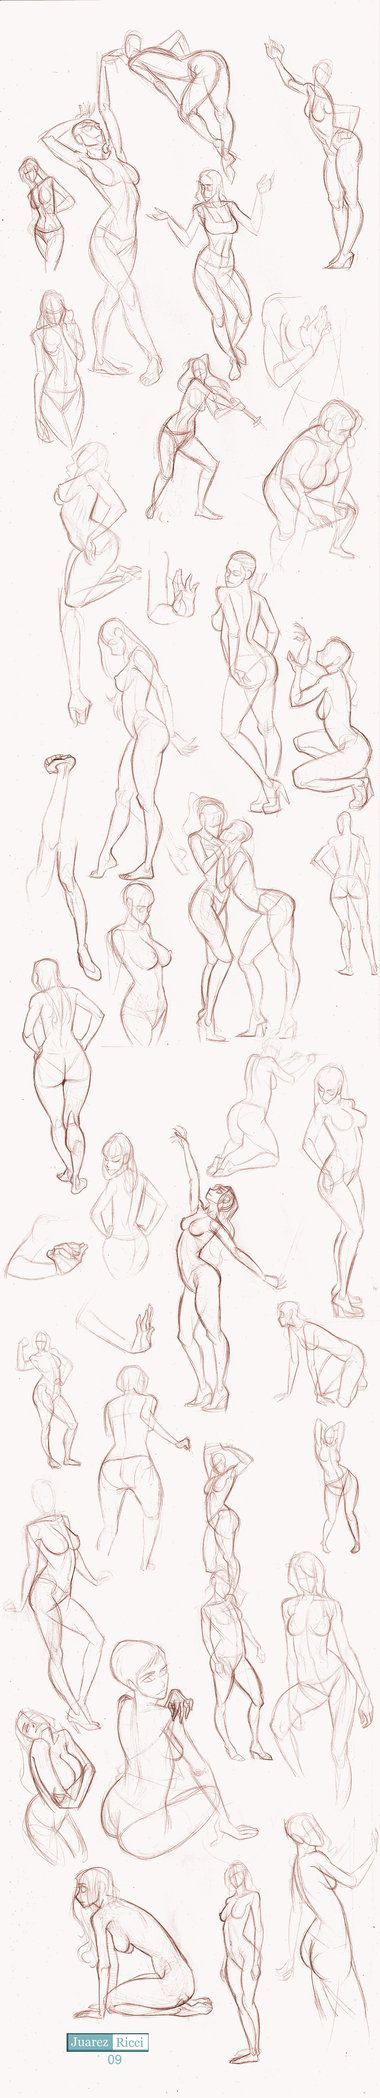 A great reference, all of my characters always end up looking rather stiff, hopefully a little practice will help